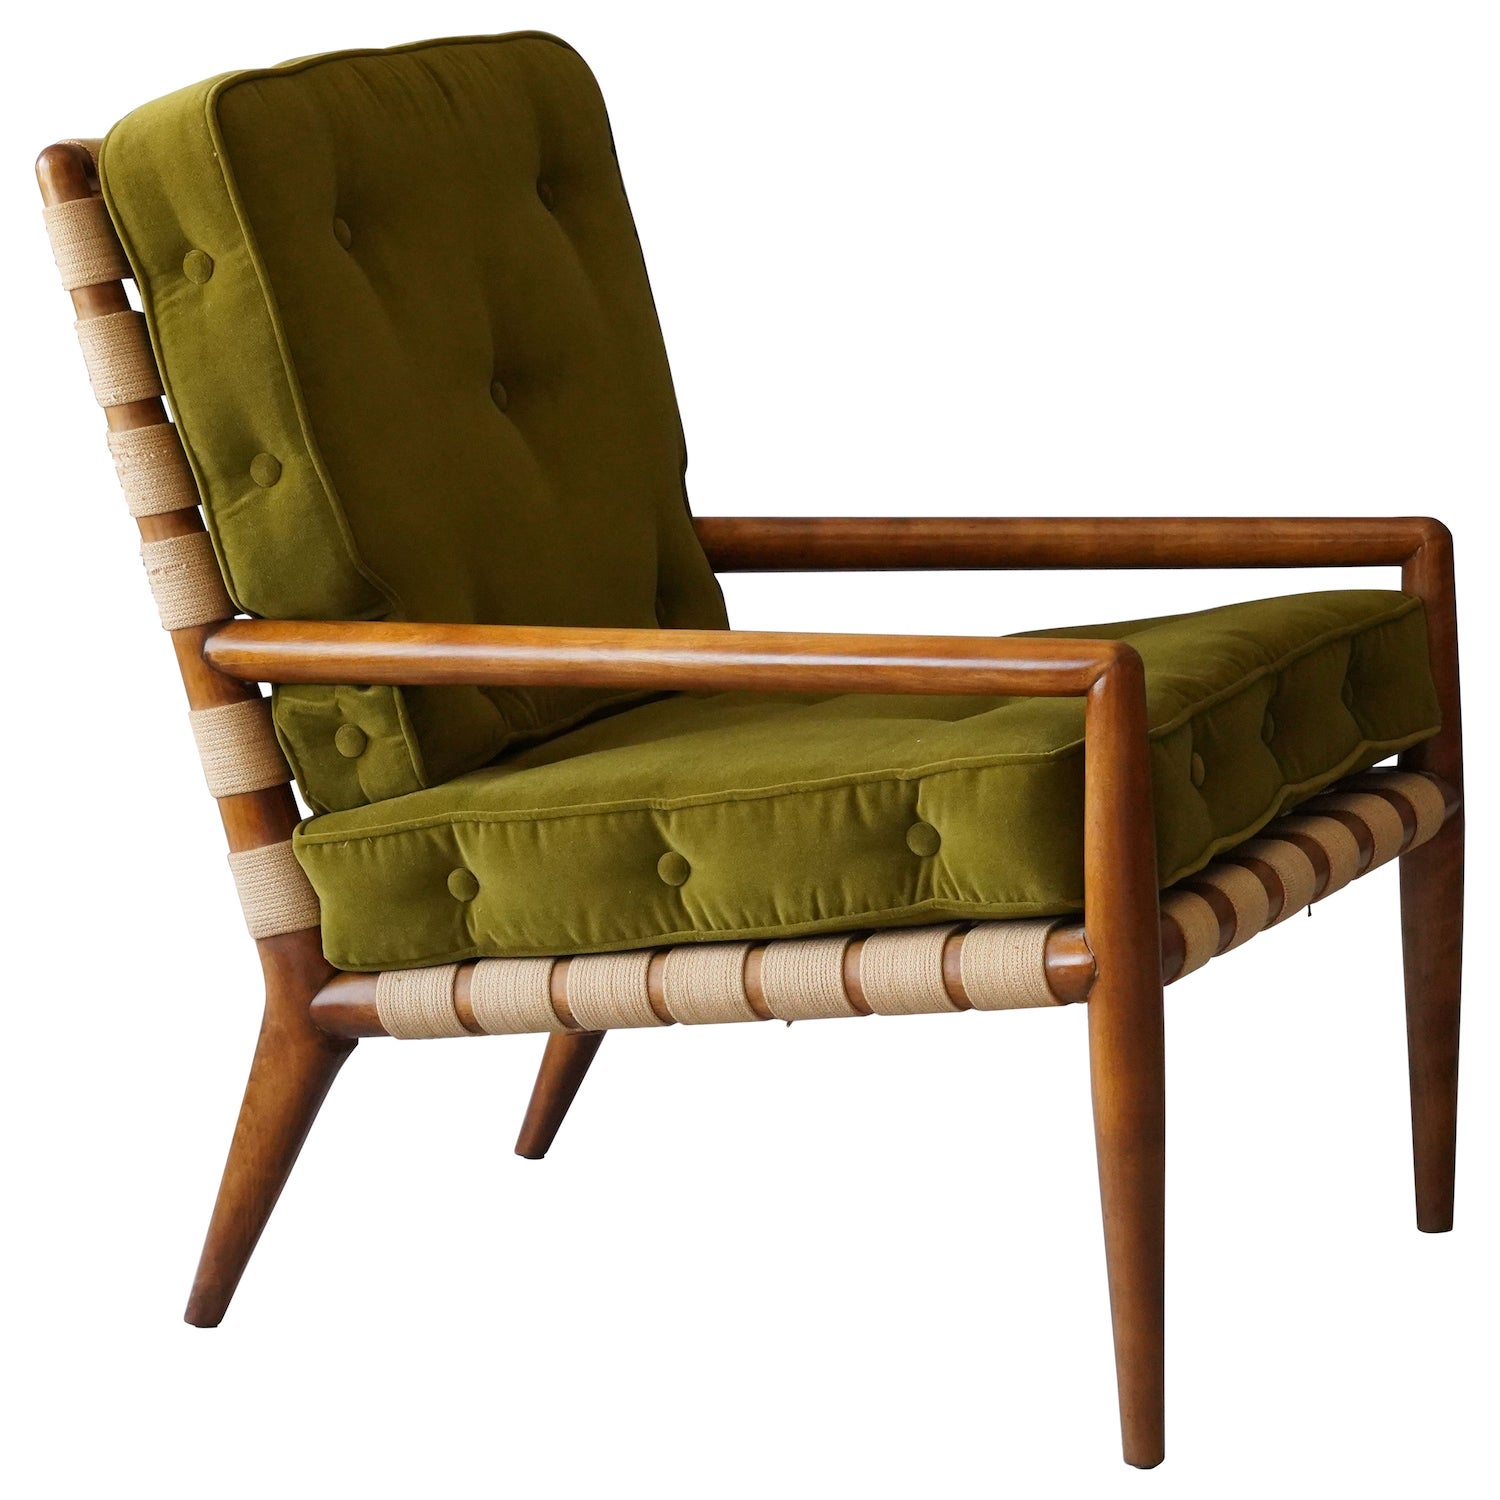 The Best Shops For Mid-Century Modern Furniture